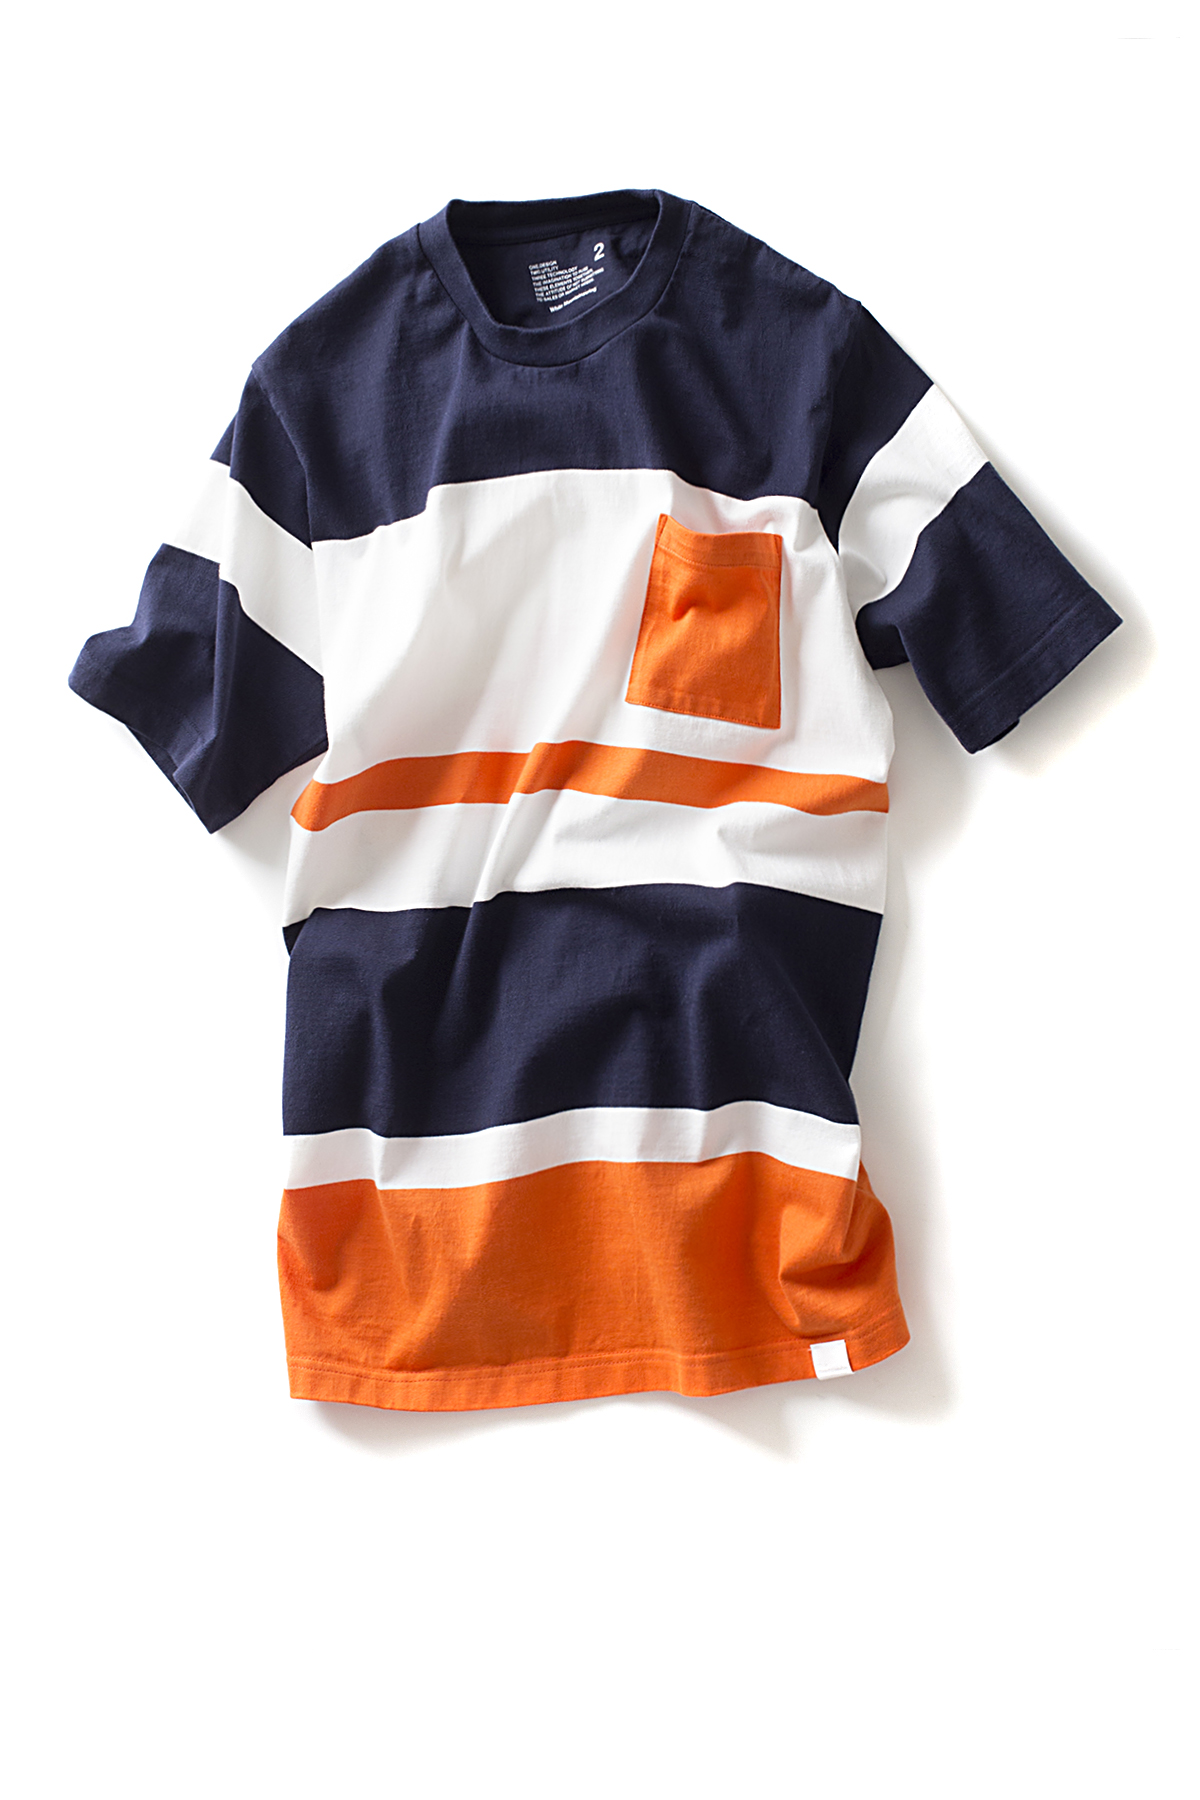 WHITE MOUNTAINEERING : Multi Border Pocket T-Shirts (Navy / Orange)